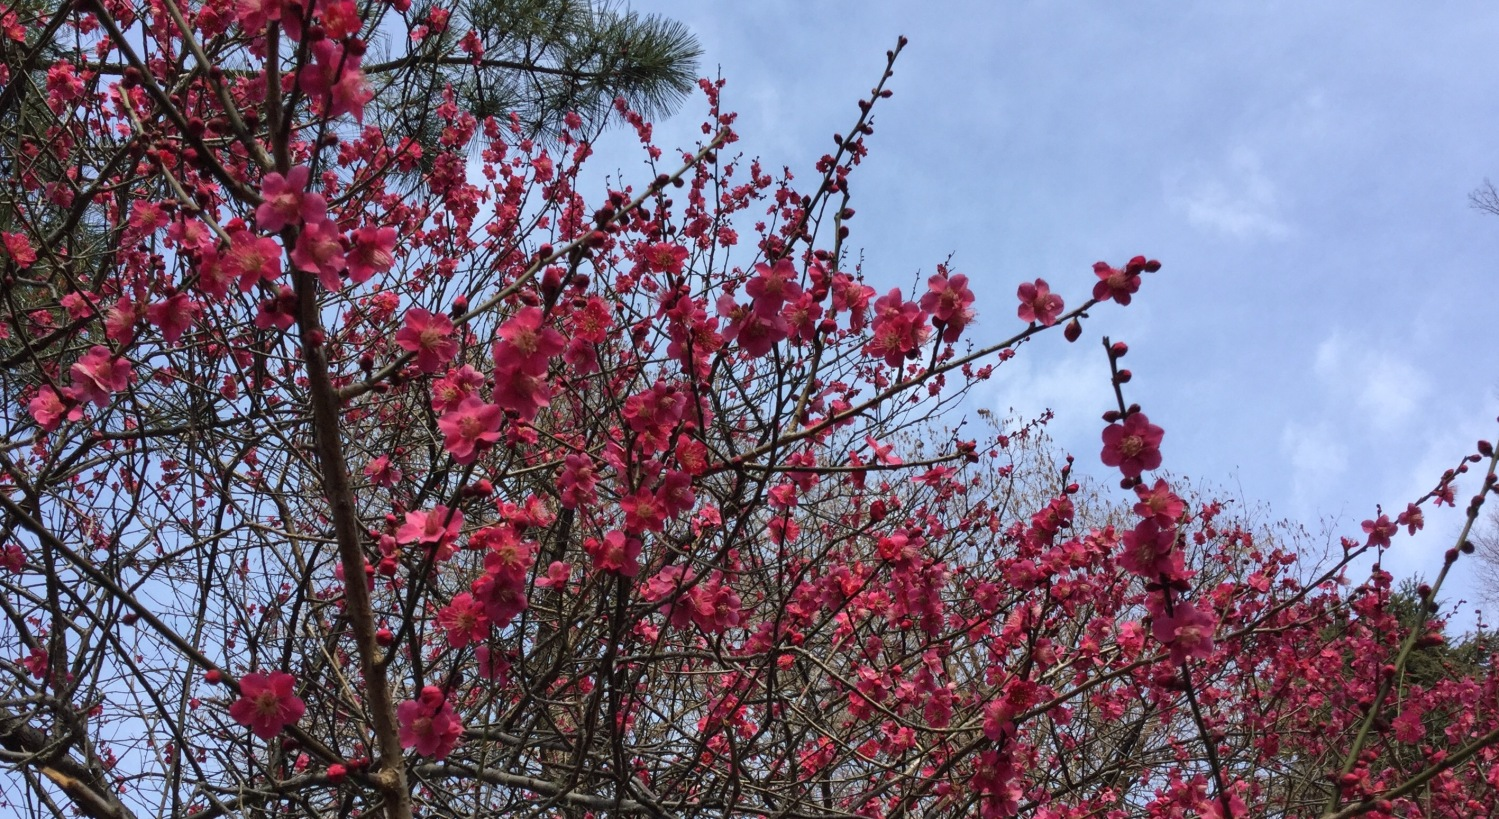 Favorite Japanese apricot with red blossoms image